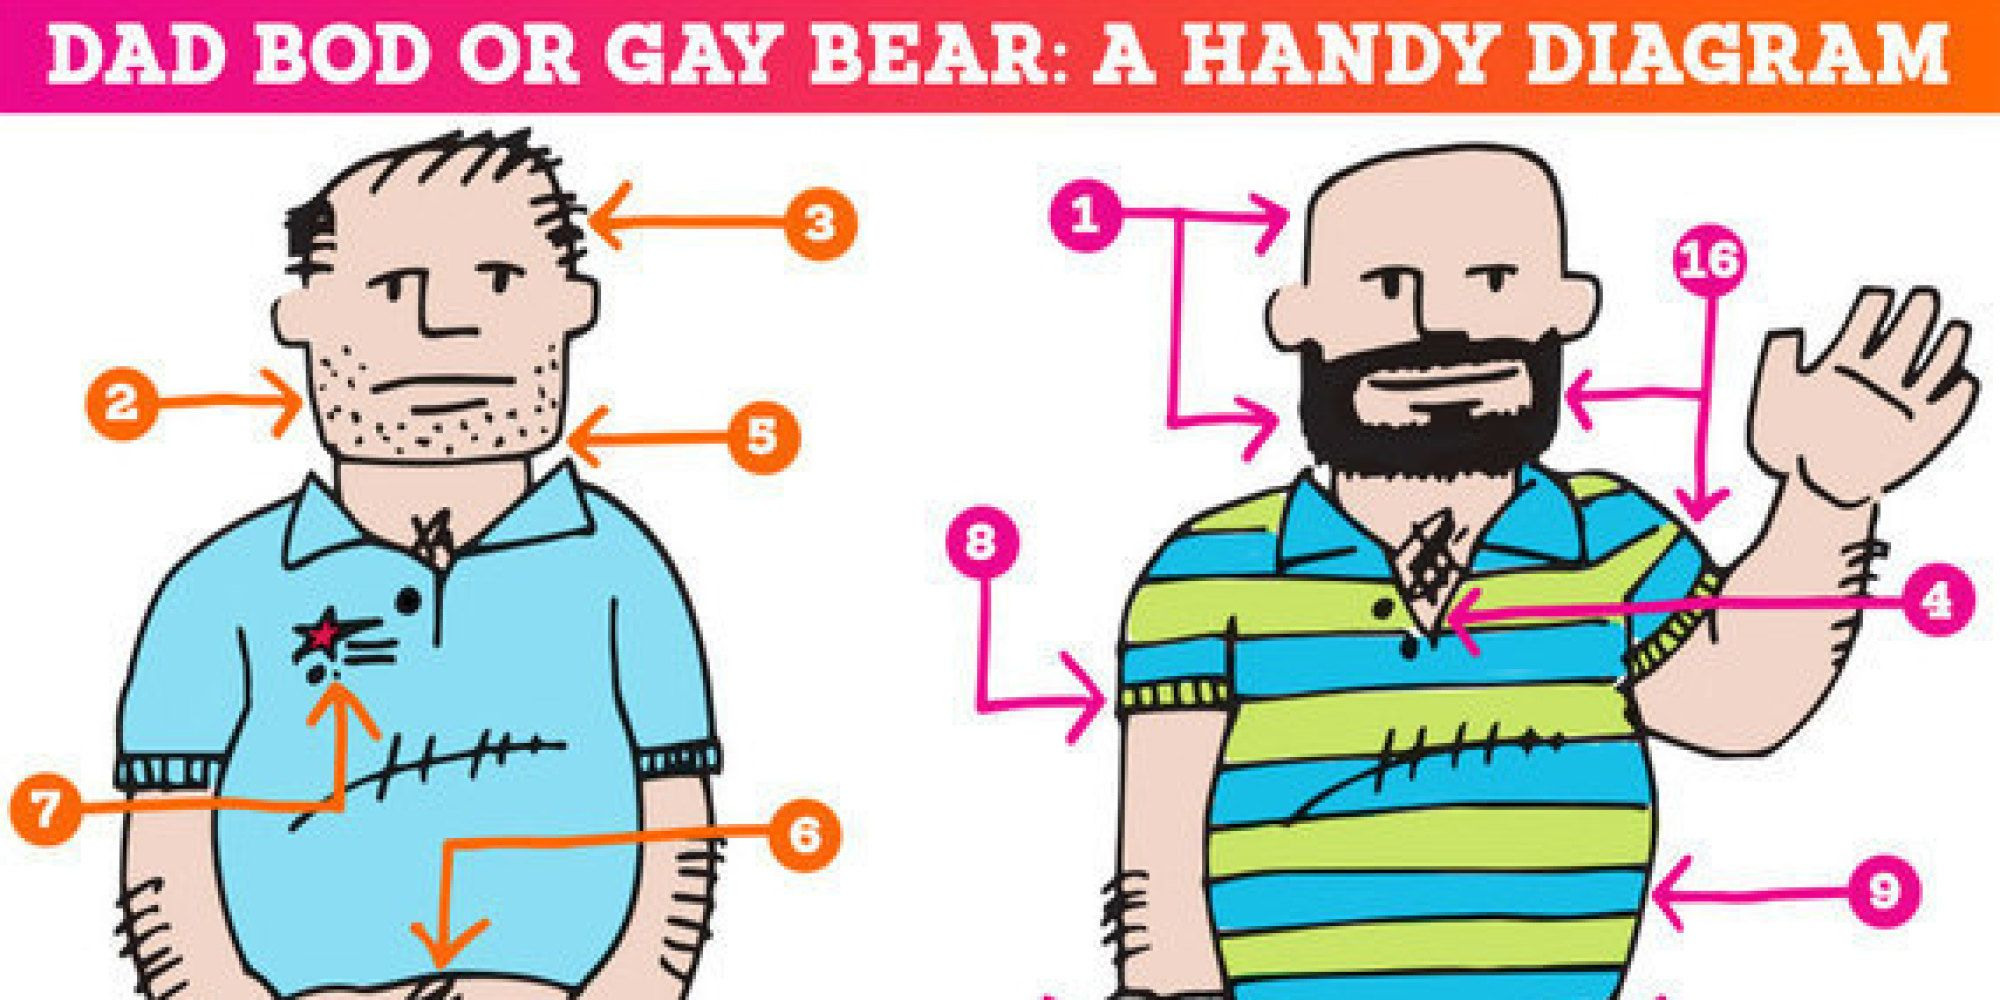 Gay male activity